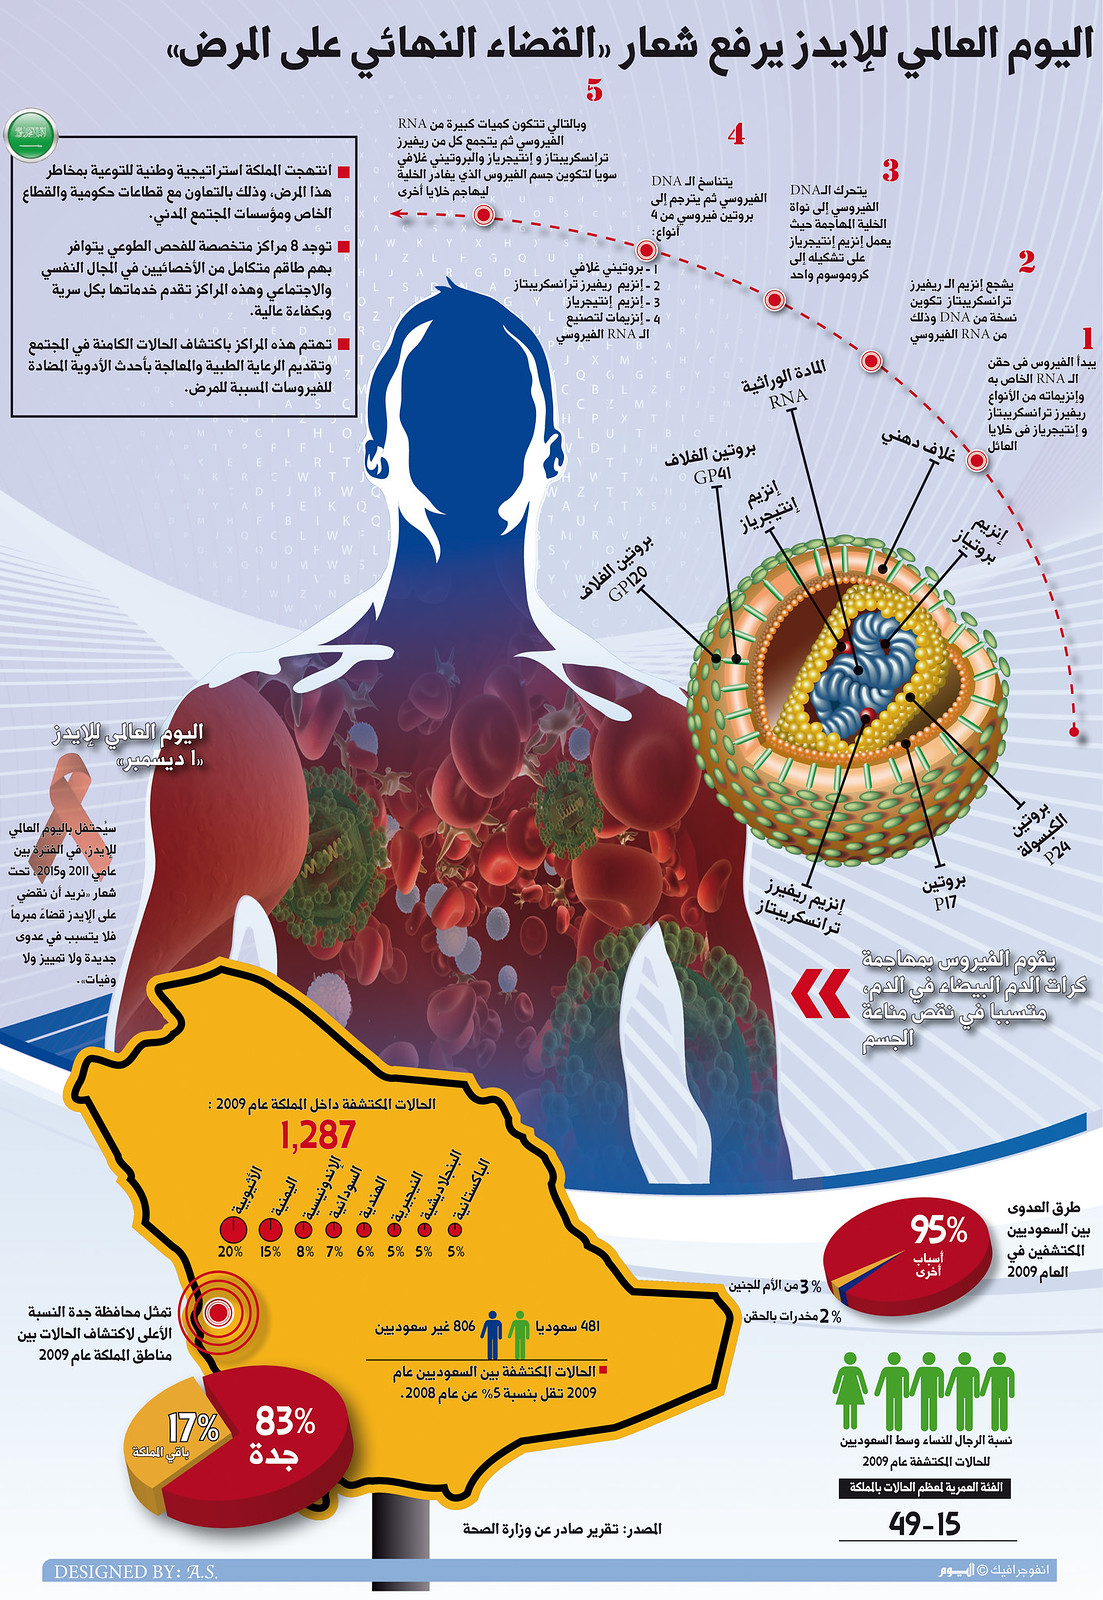 Aids in Saudi Arabia, infographic by Amr Elsawy